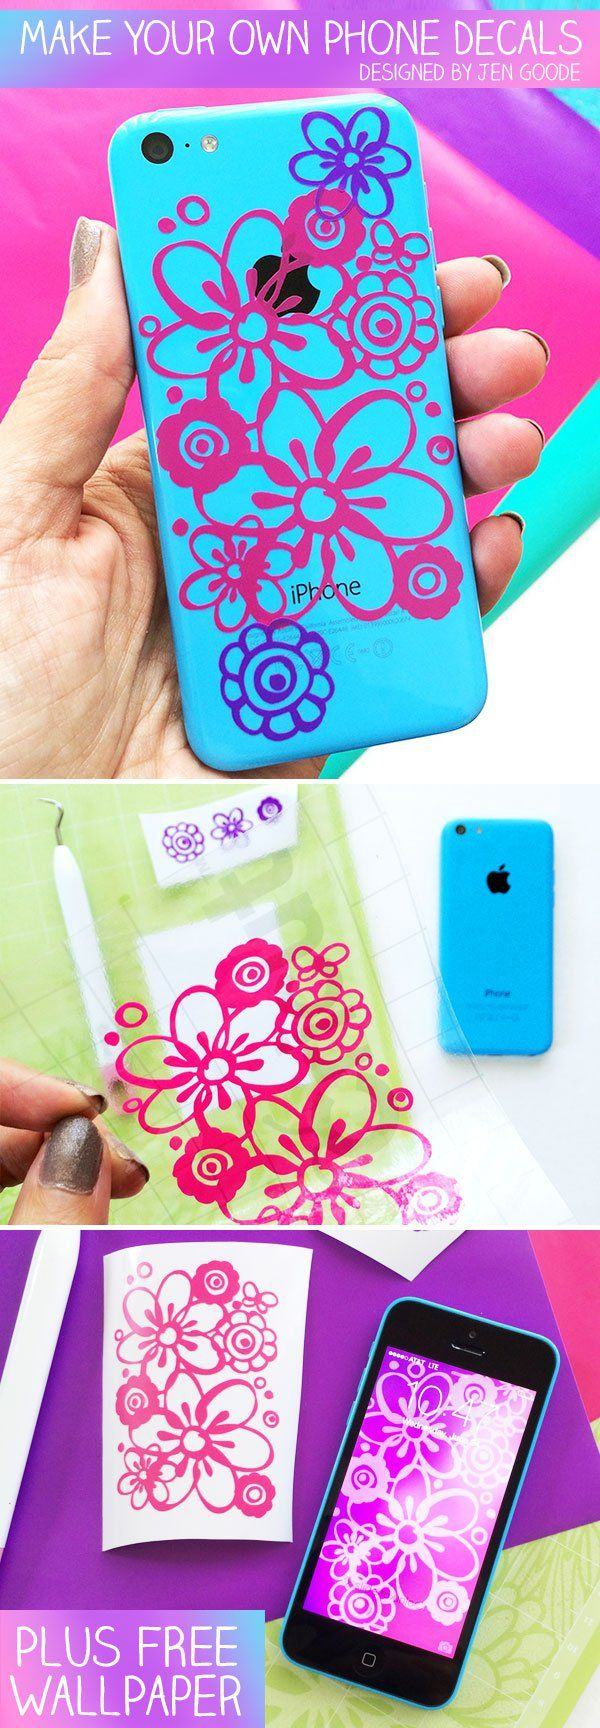 Make iPhone Decals with Your iPhone and Cricut Machine ...